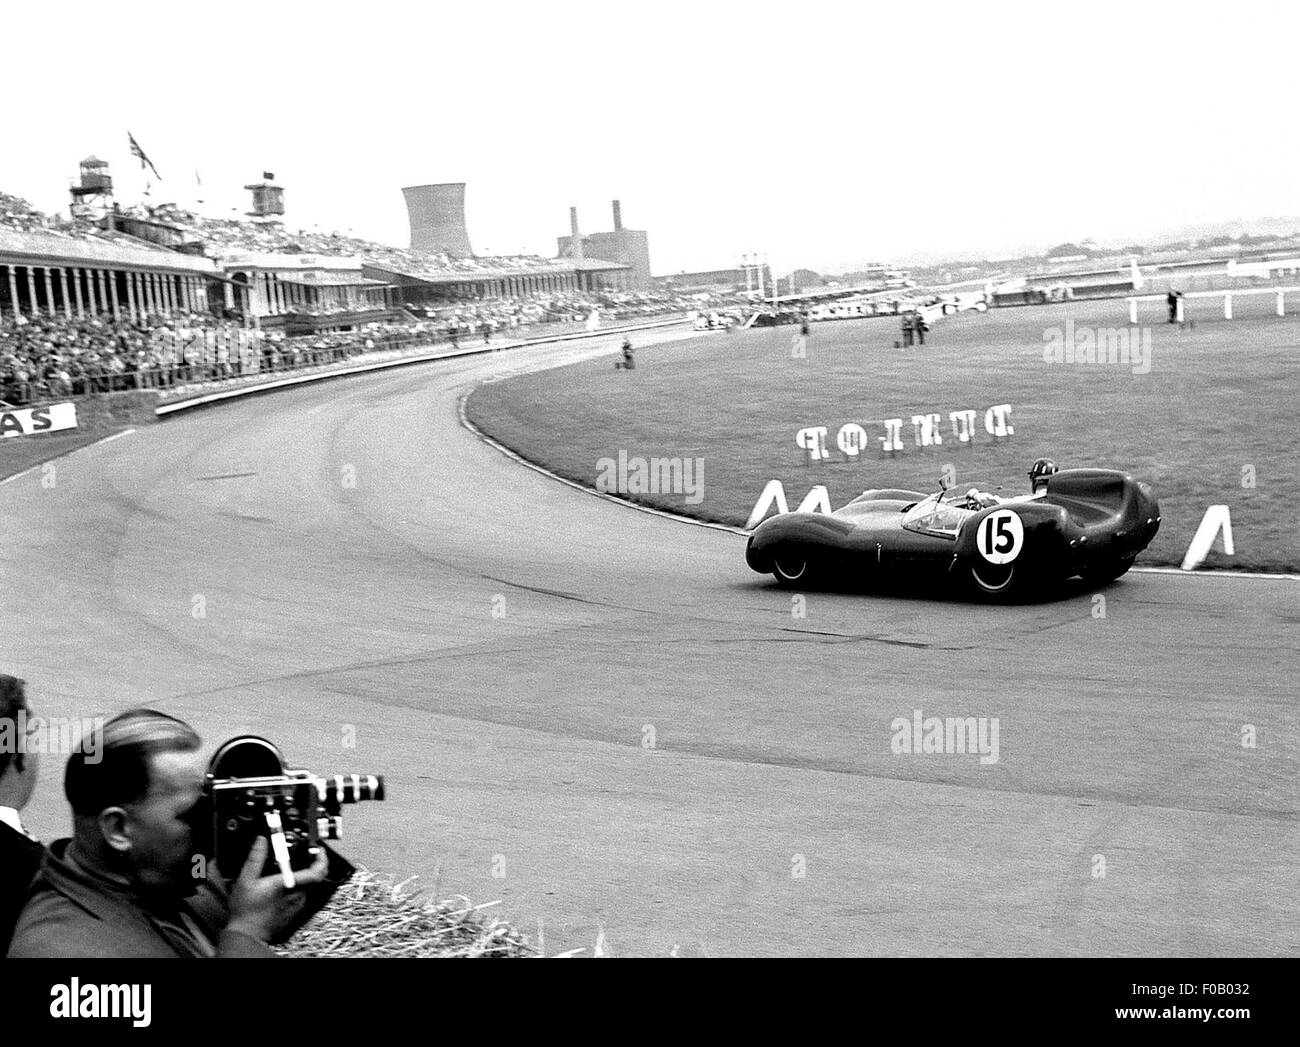 Aintree internationale Sportscar Rennen 18. Juli 1959. Graham Hill Lotus 15 Höhepunkt Rennsieger. Stockbild